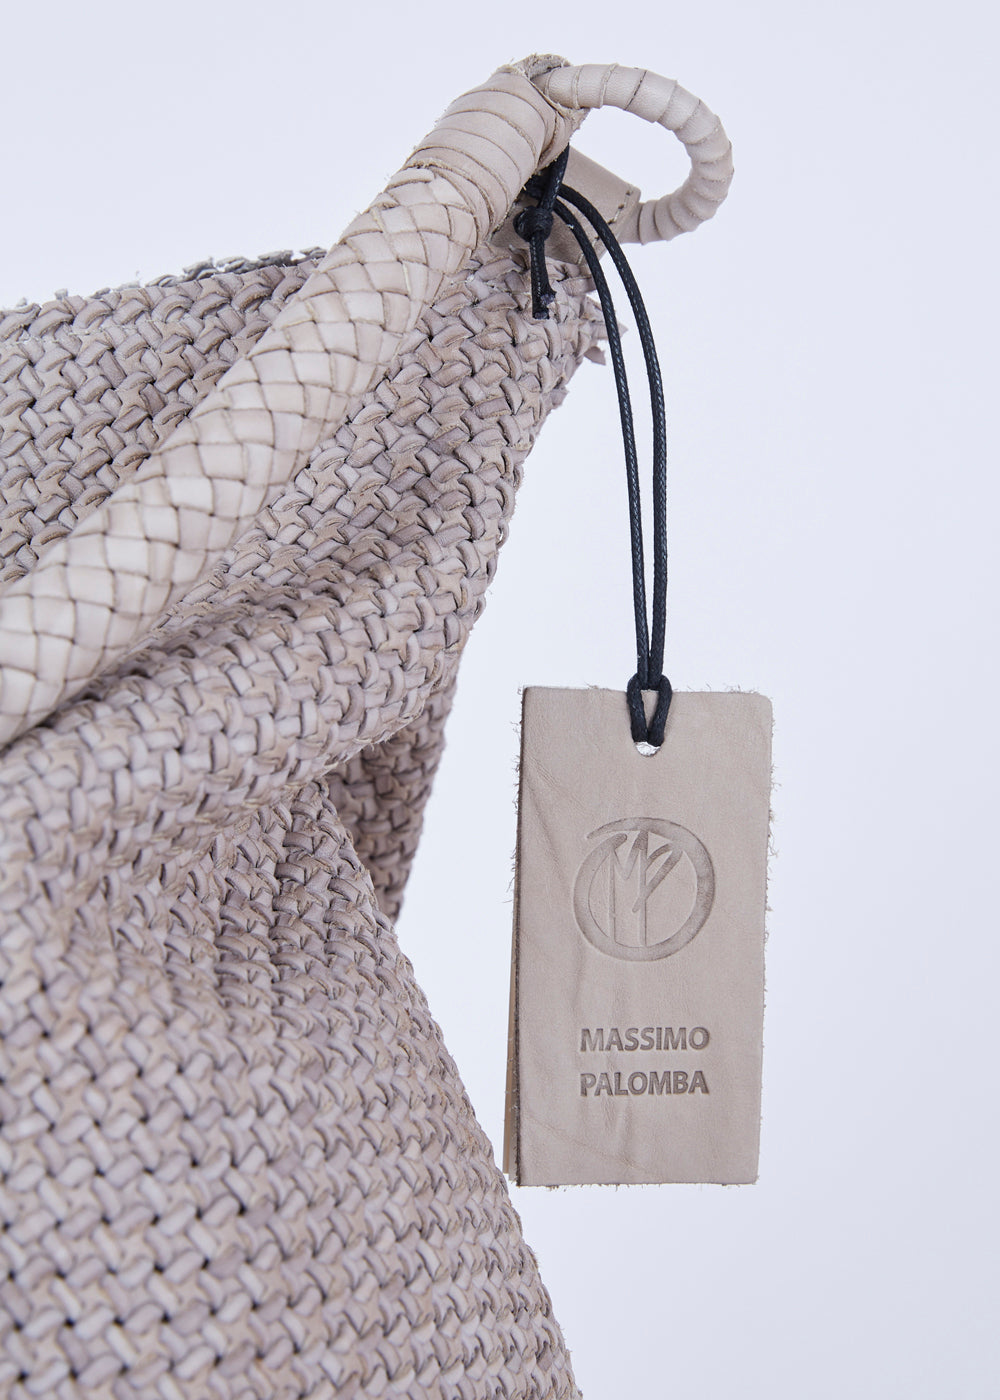 61461a0dad Massimo Palomba · Calypso Woven Shoulder Bag Calypso Woven Shoulder Bag